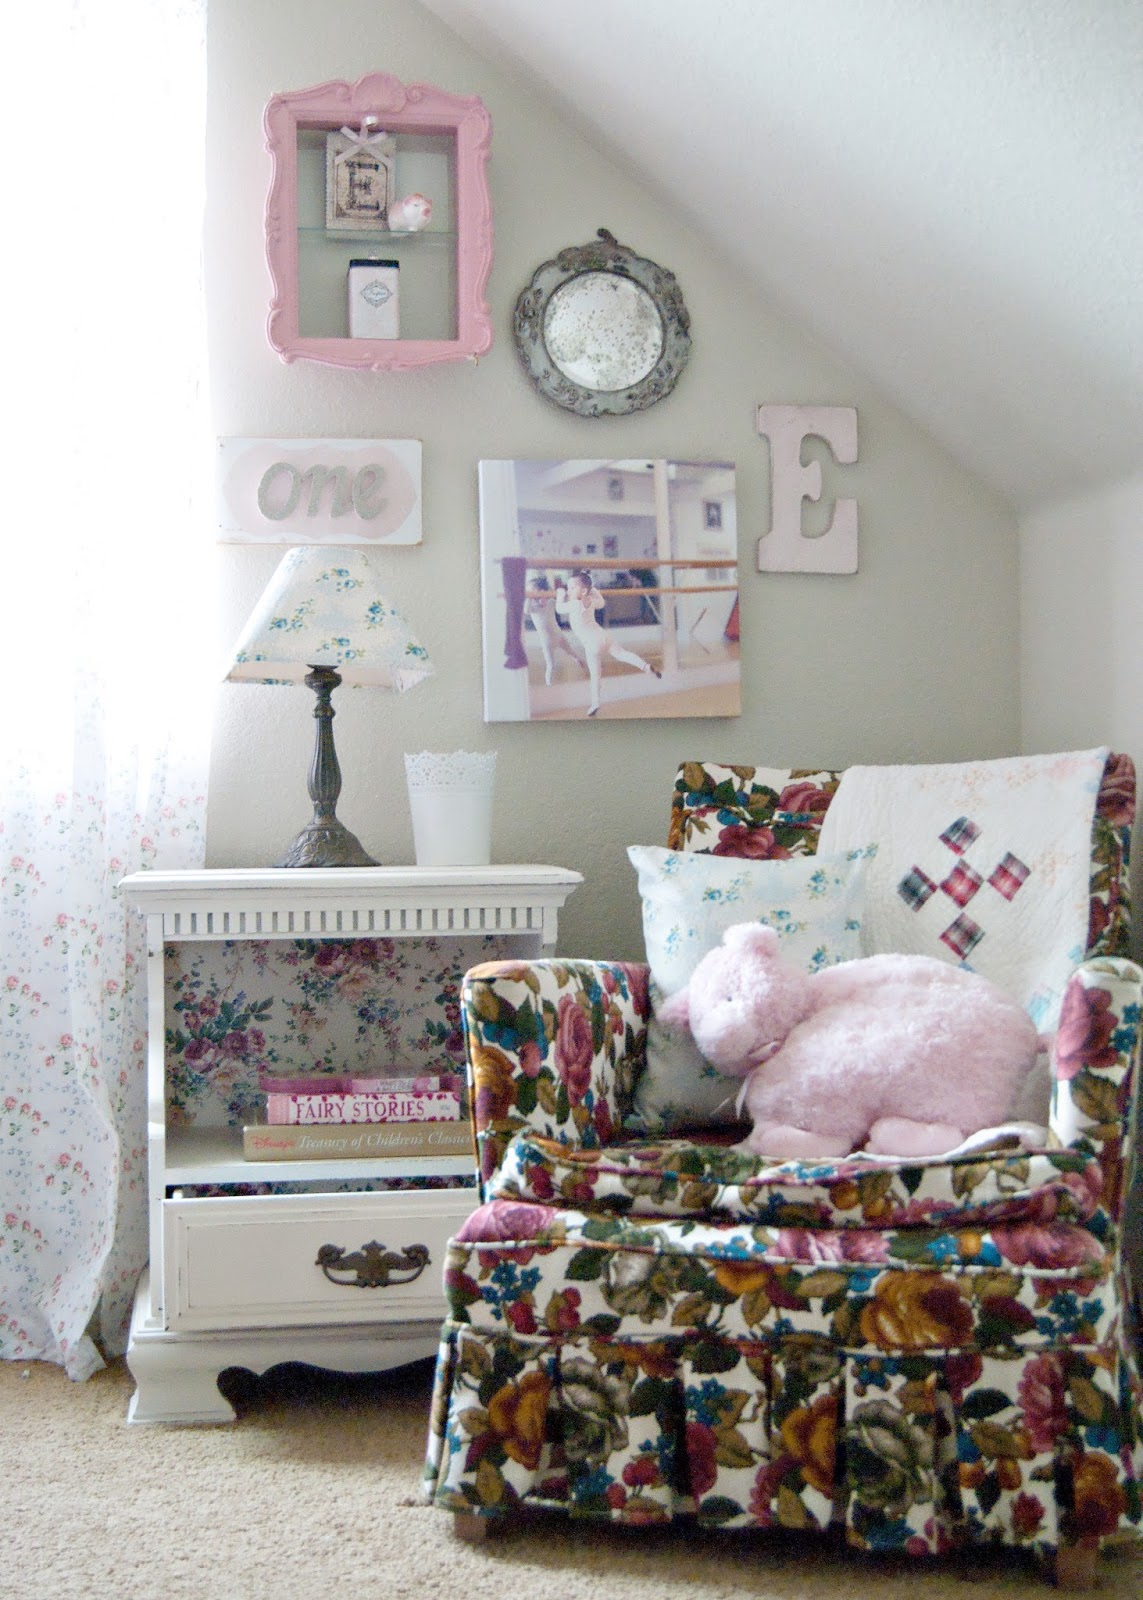 Reading corner - granny chic chair and vintage nightstand framed by gallery wall